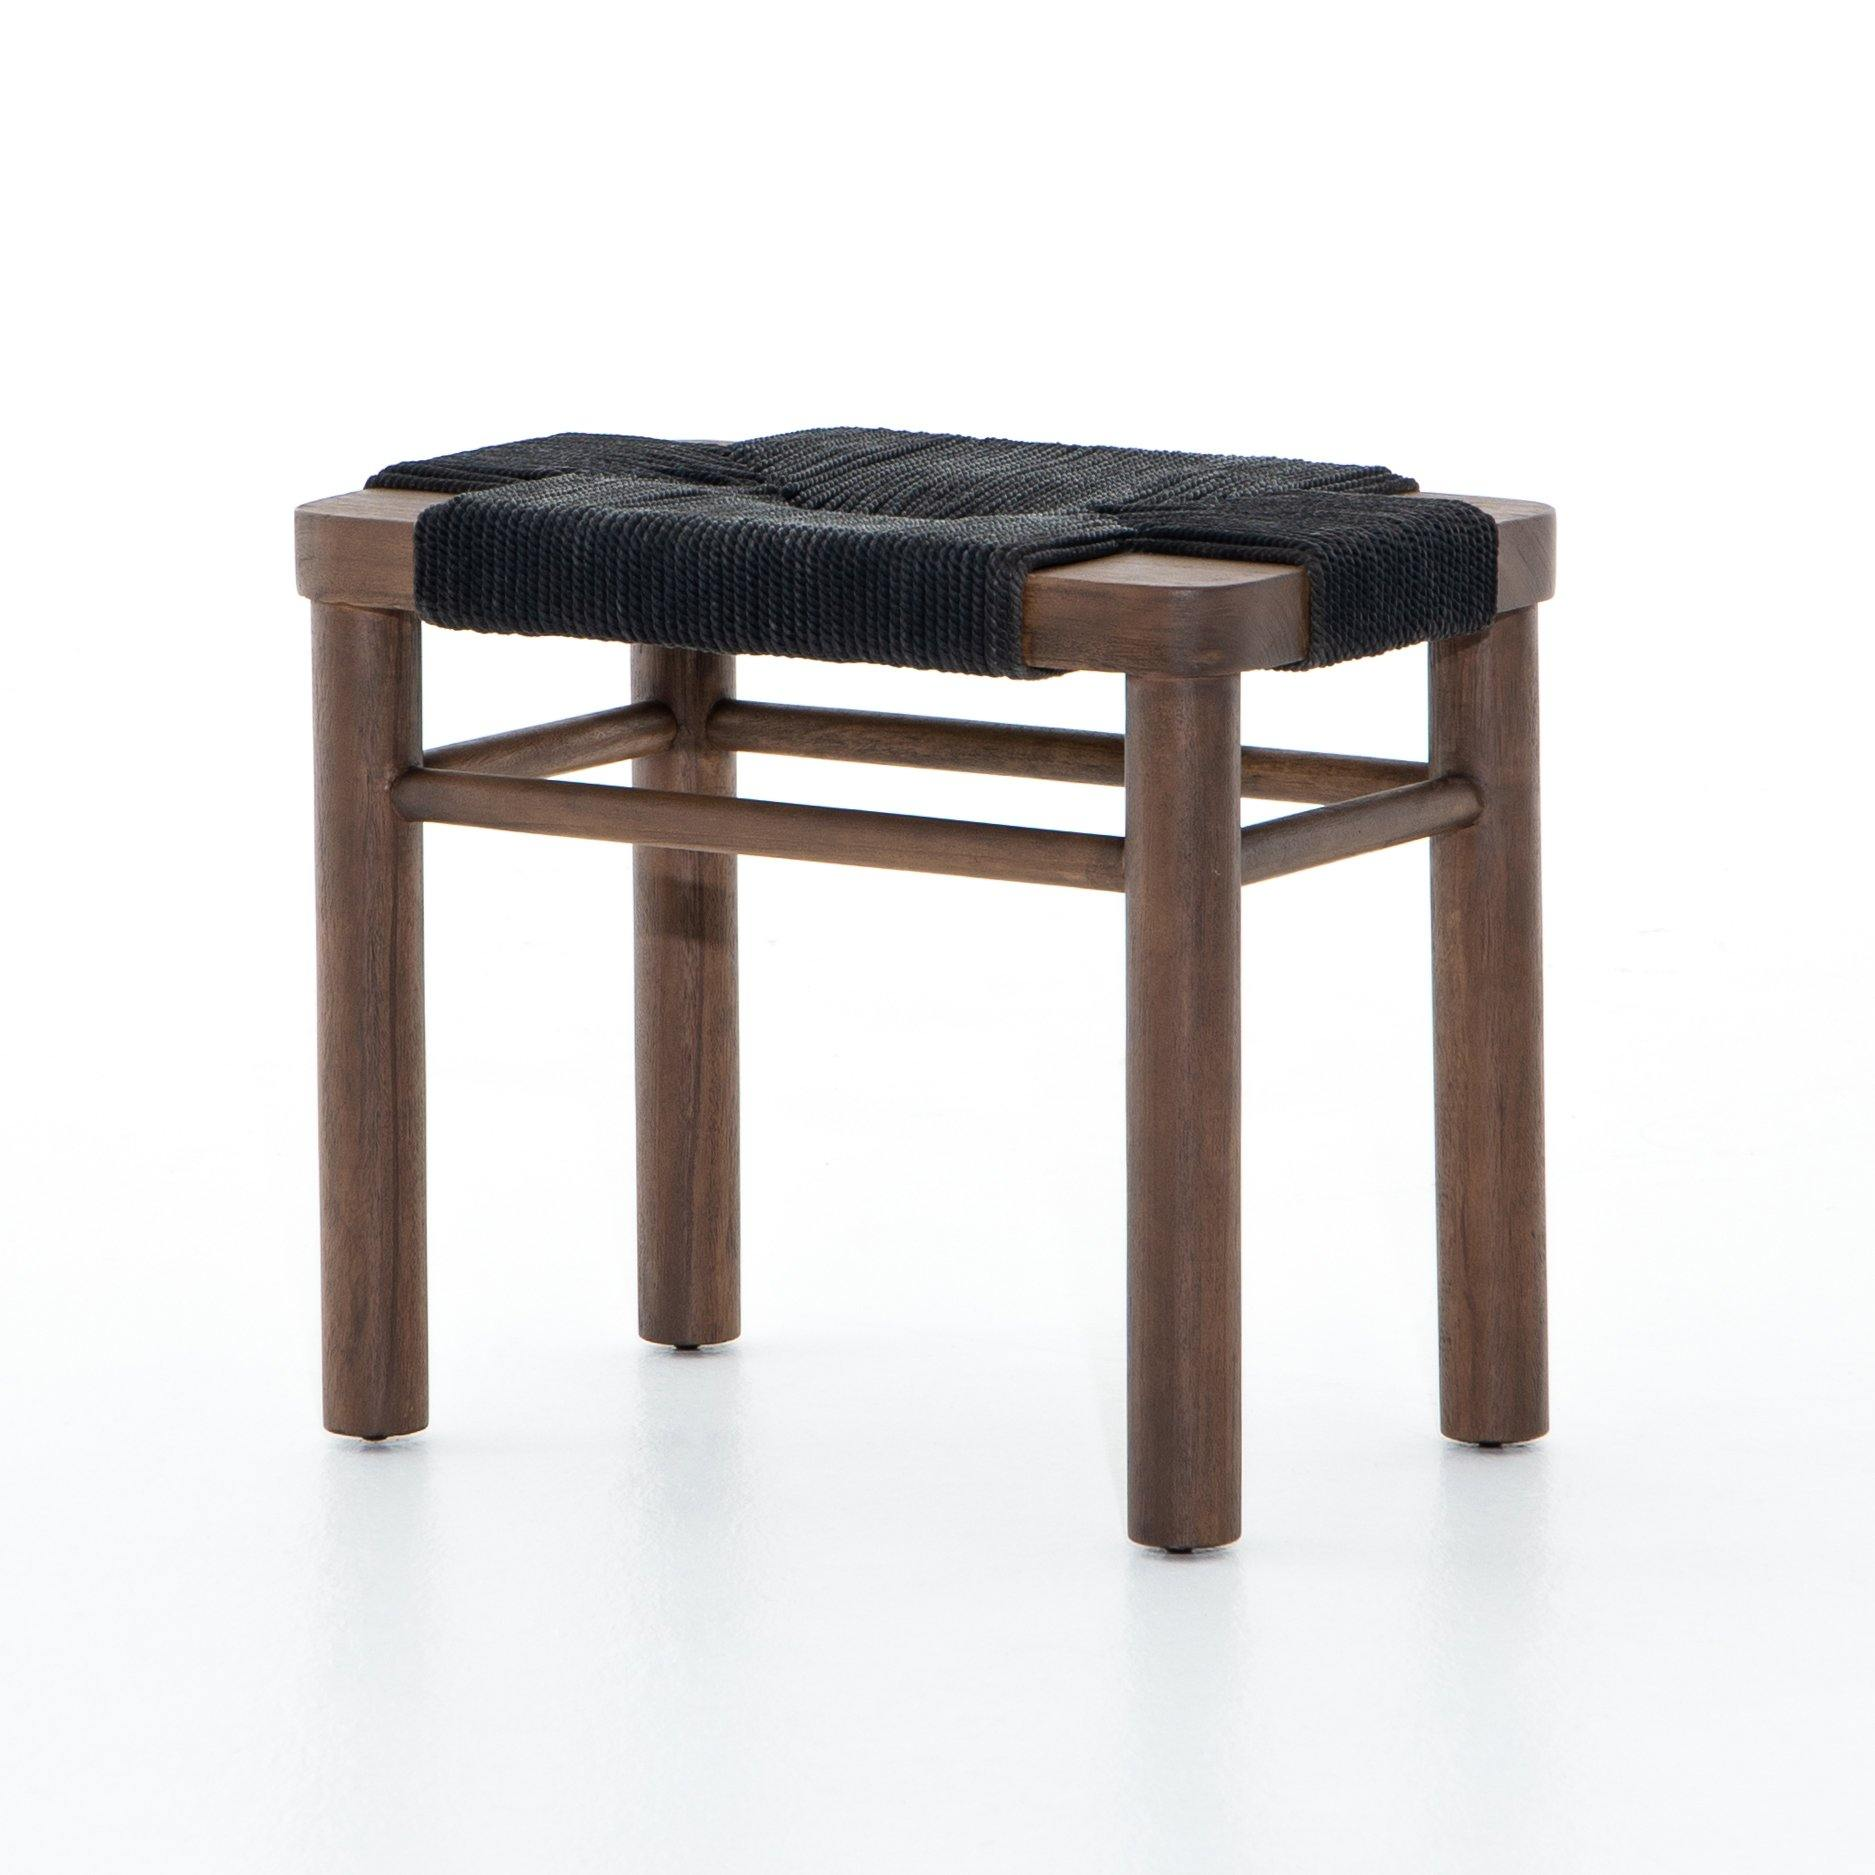 SHONA STOOL, BLACK - Reimagine Designs